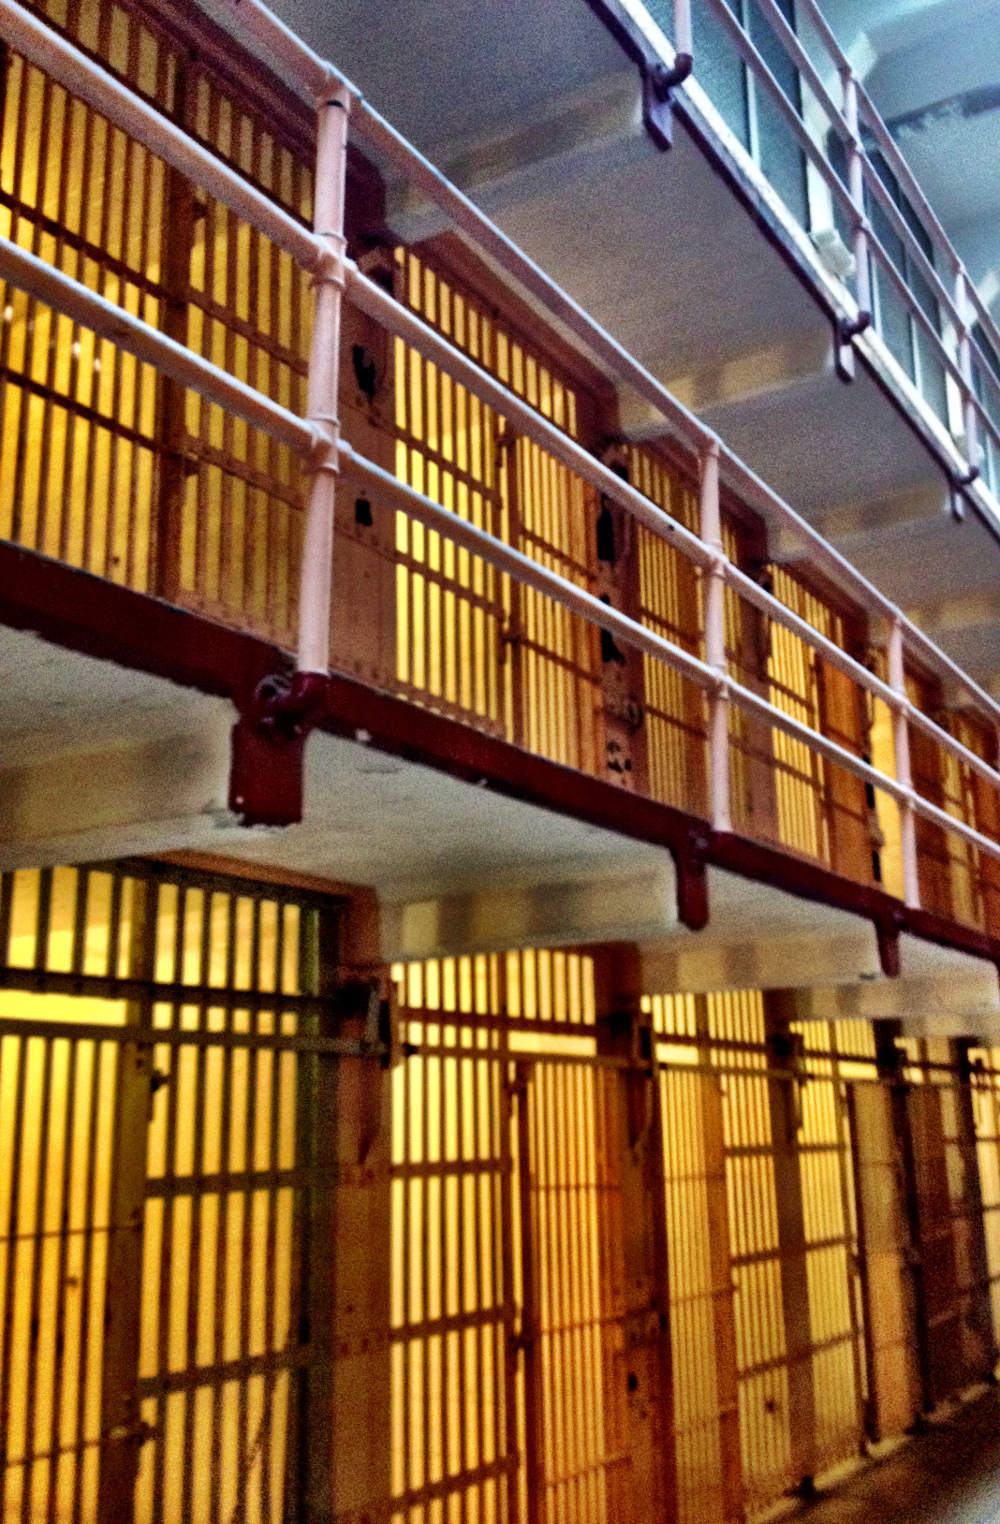 Prison cells inside Alcatraz Double-Barrelled Travel